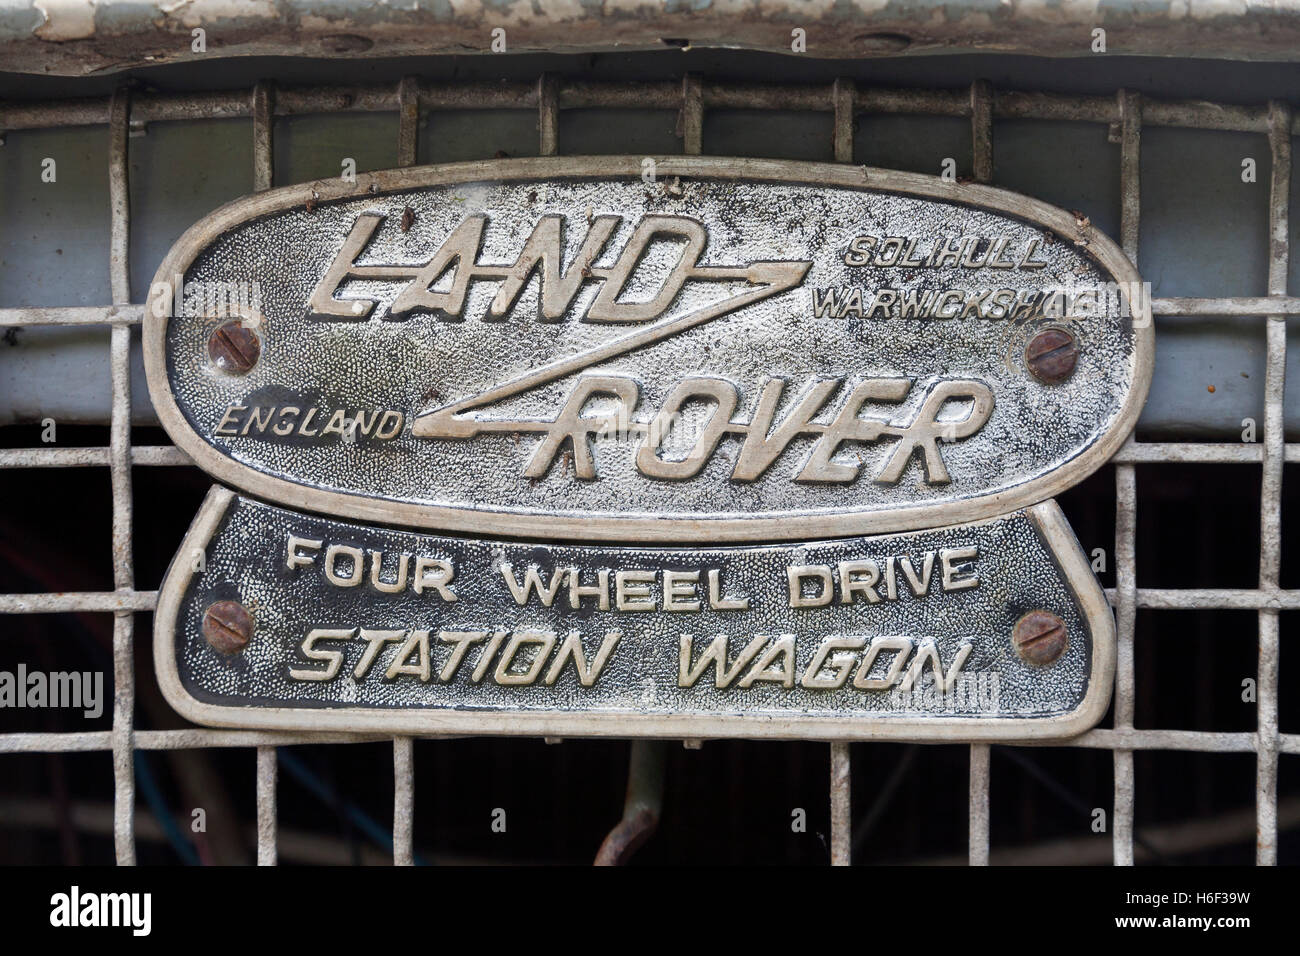 Land Rover - Stock Image